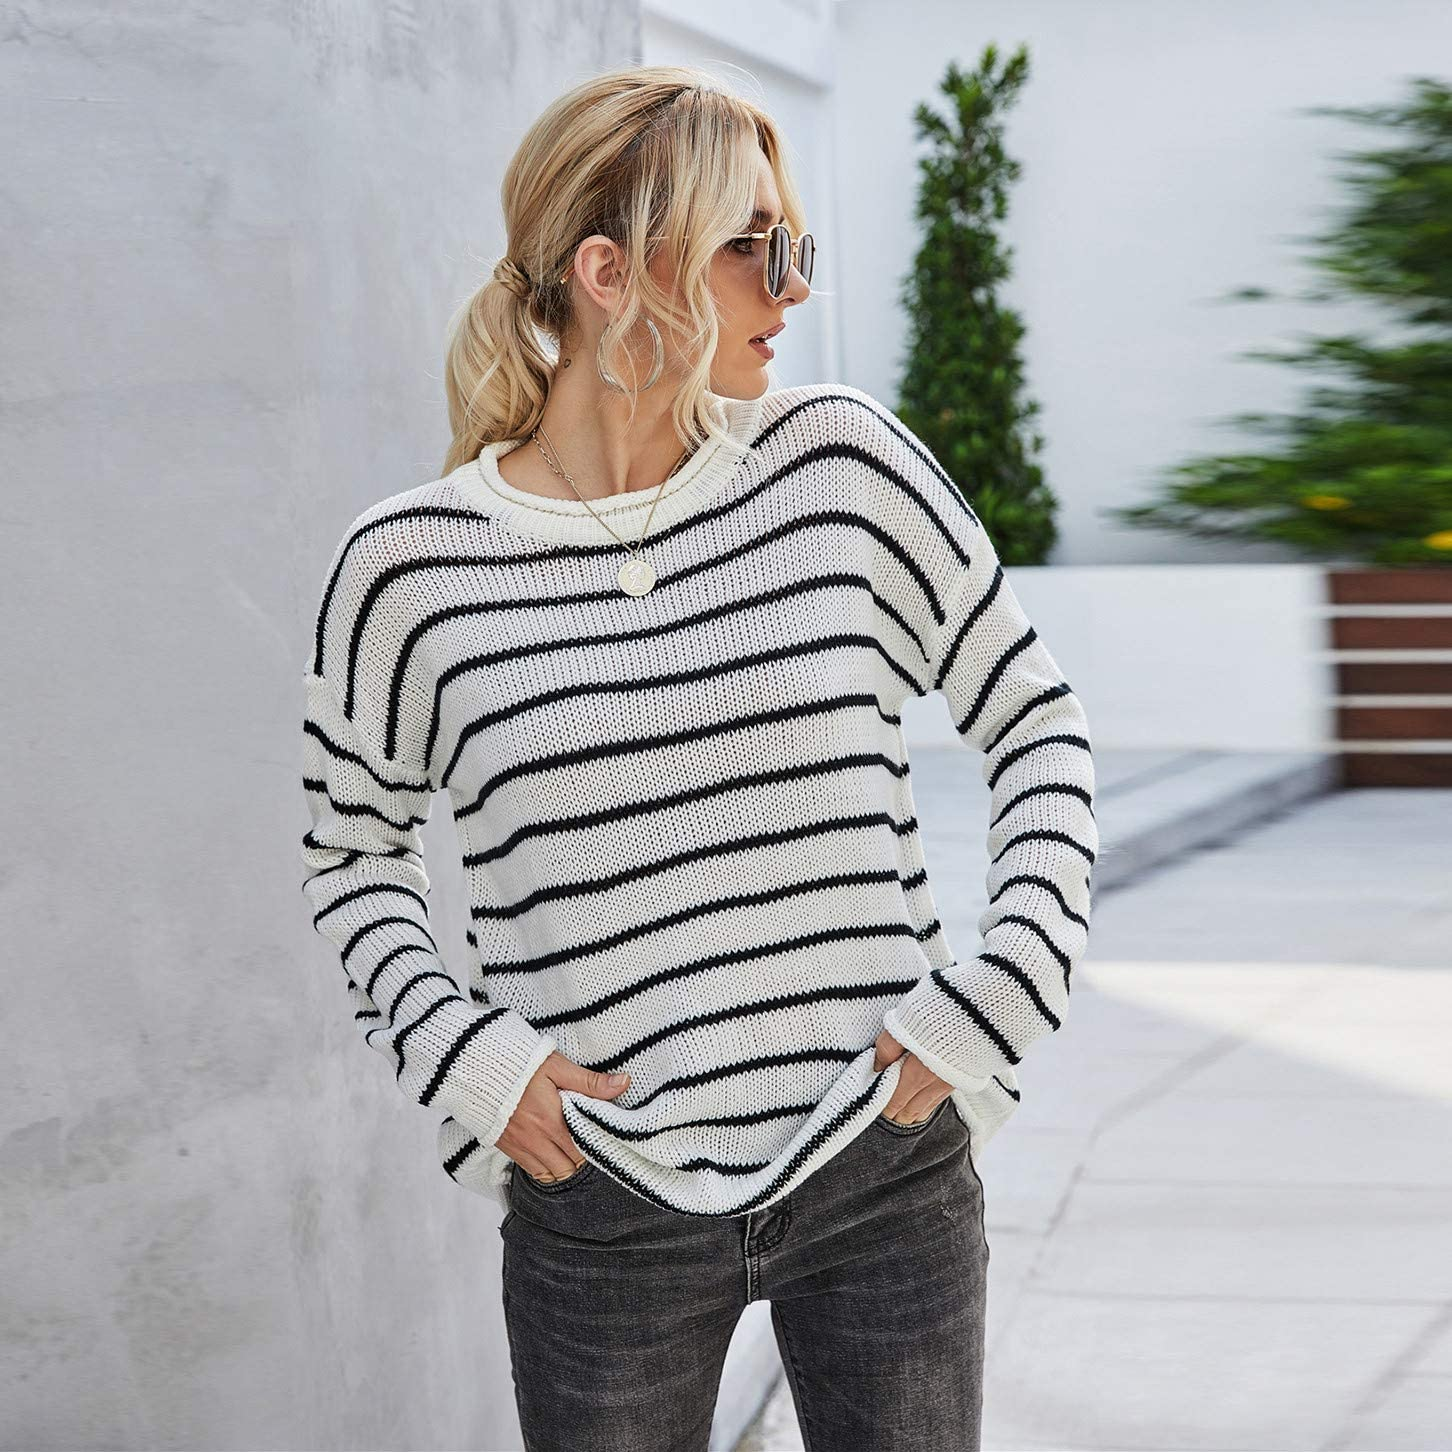 RiamxwR Pocciol Women's Casual Long Sleeve Sweater Crew Neck Striped Stitching Knit Pullover Thin Sweater Loose Outerwear